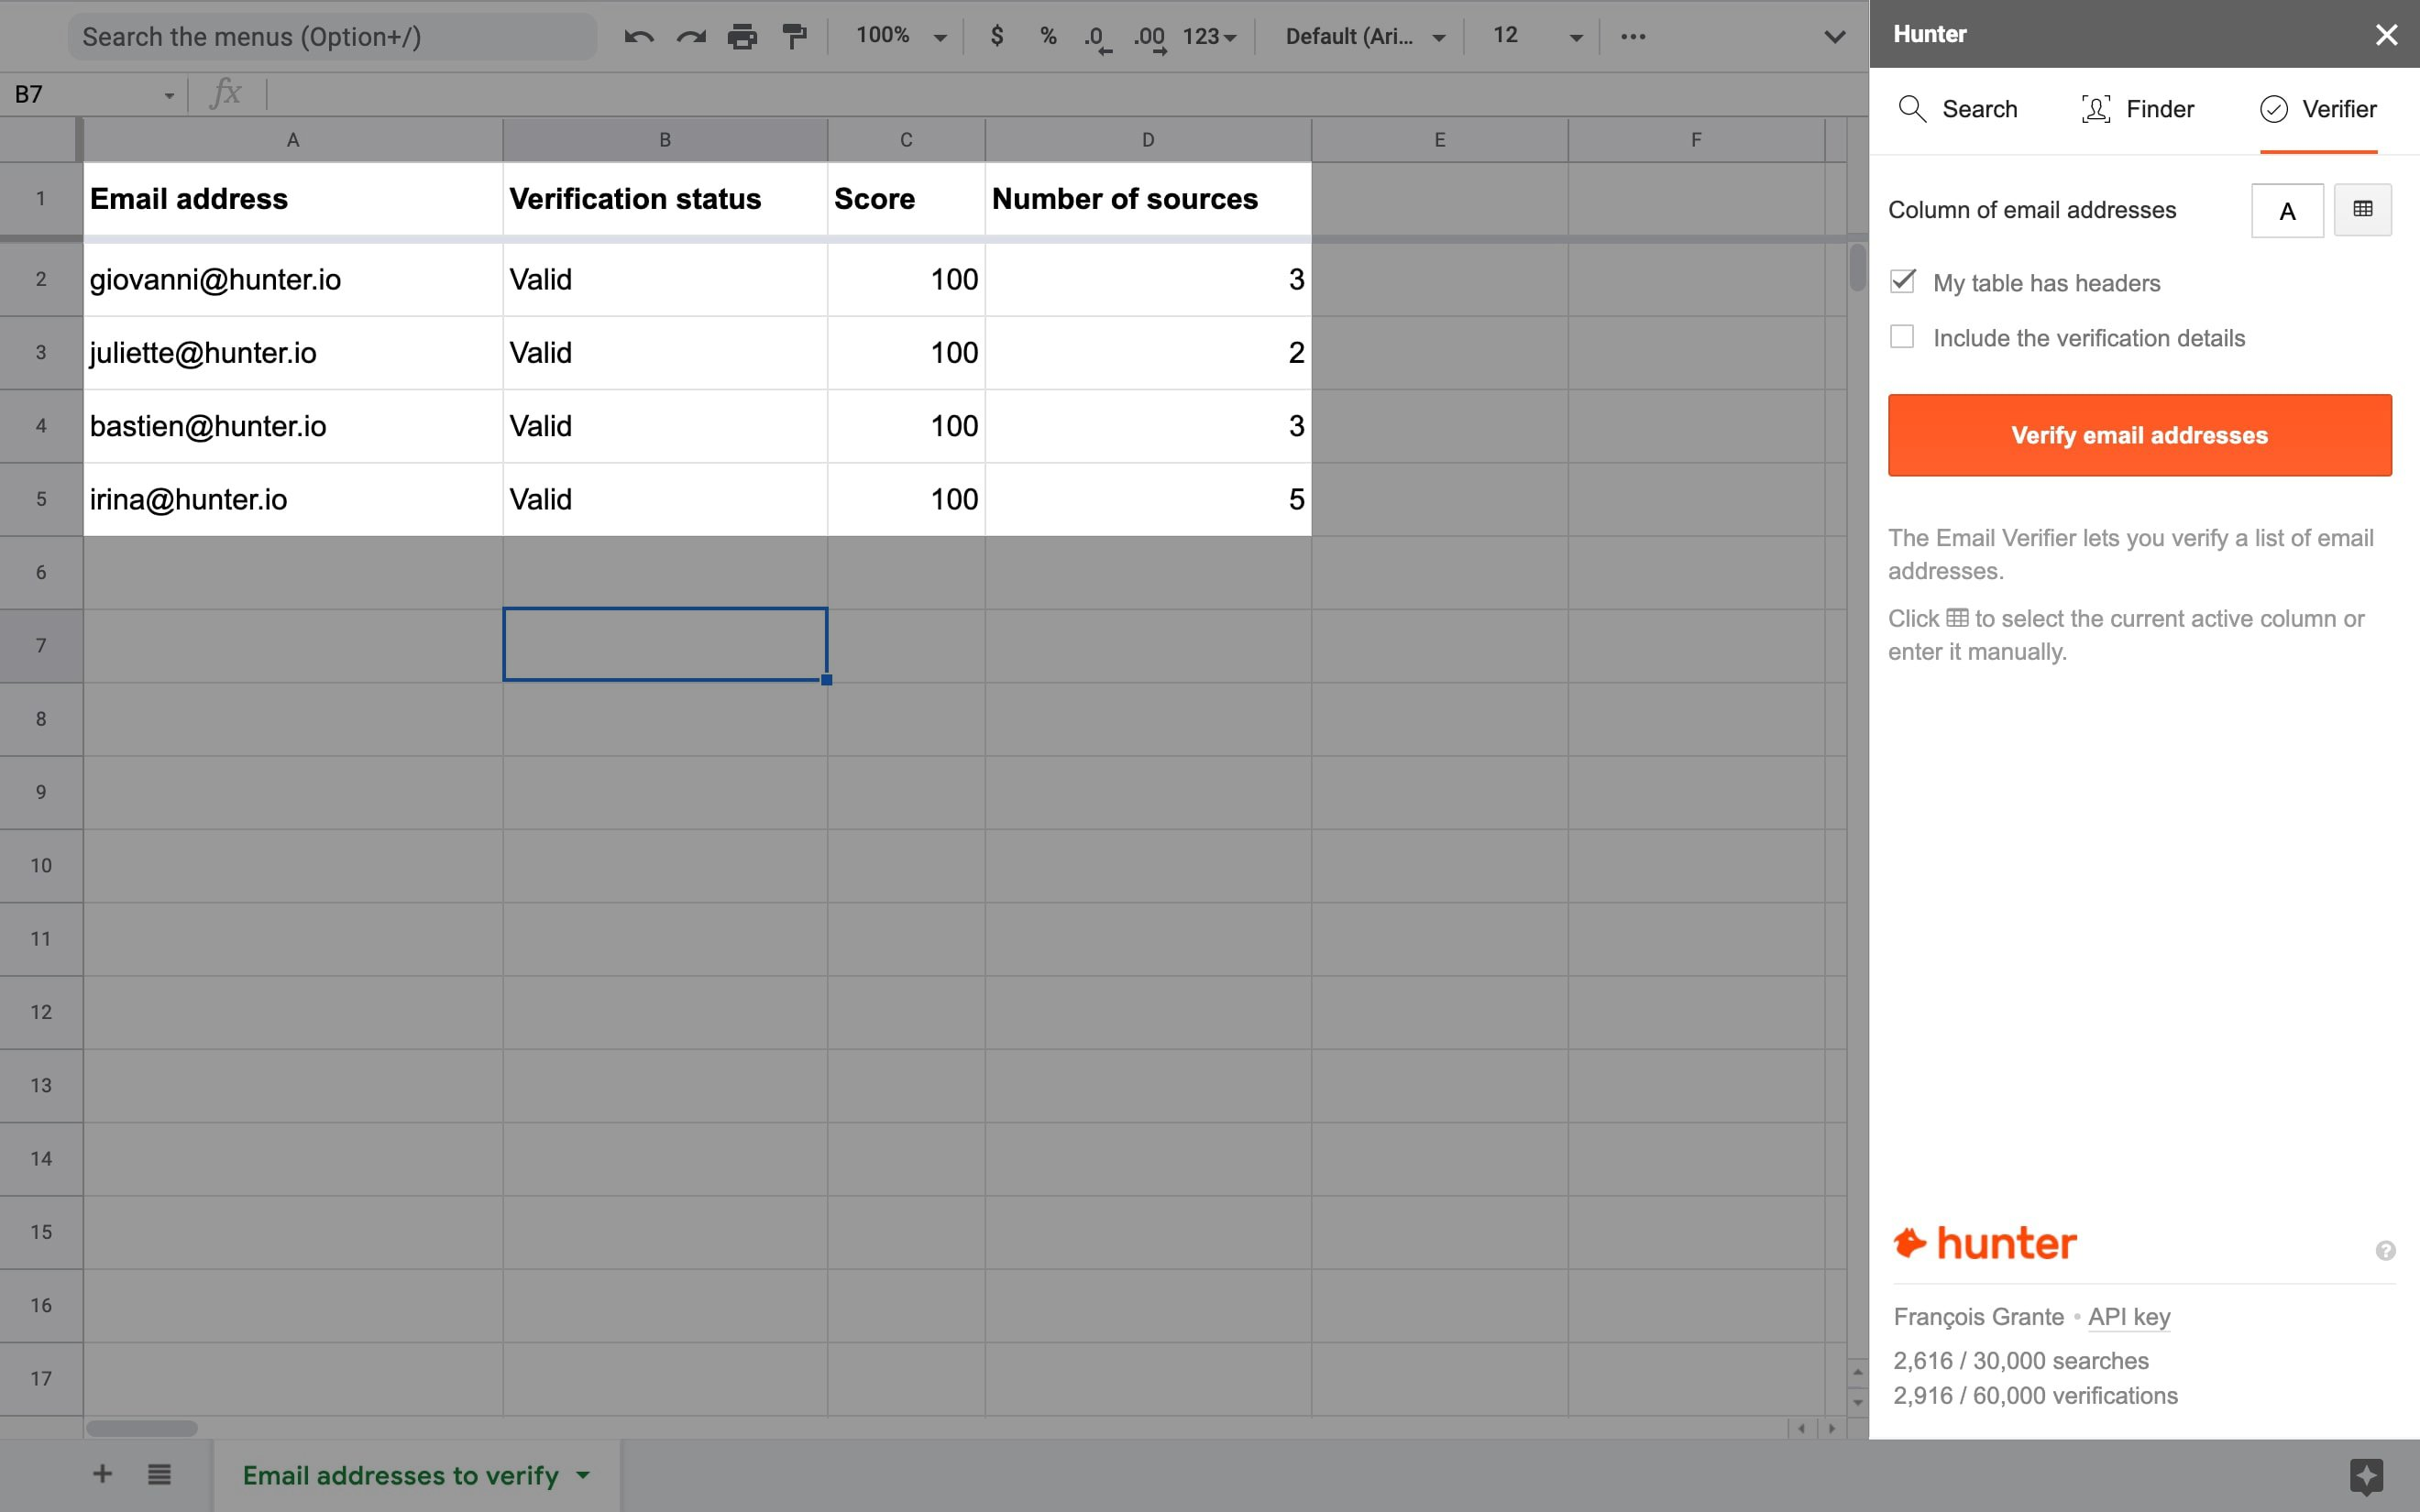 Email Verifier in Google Sheets